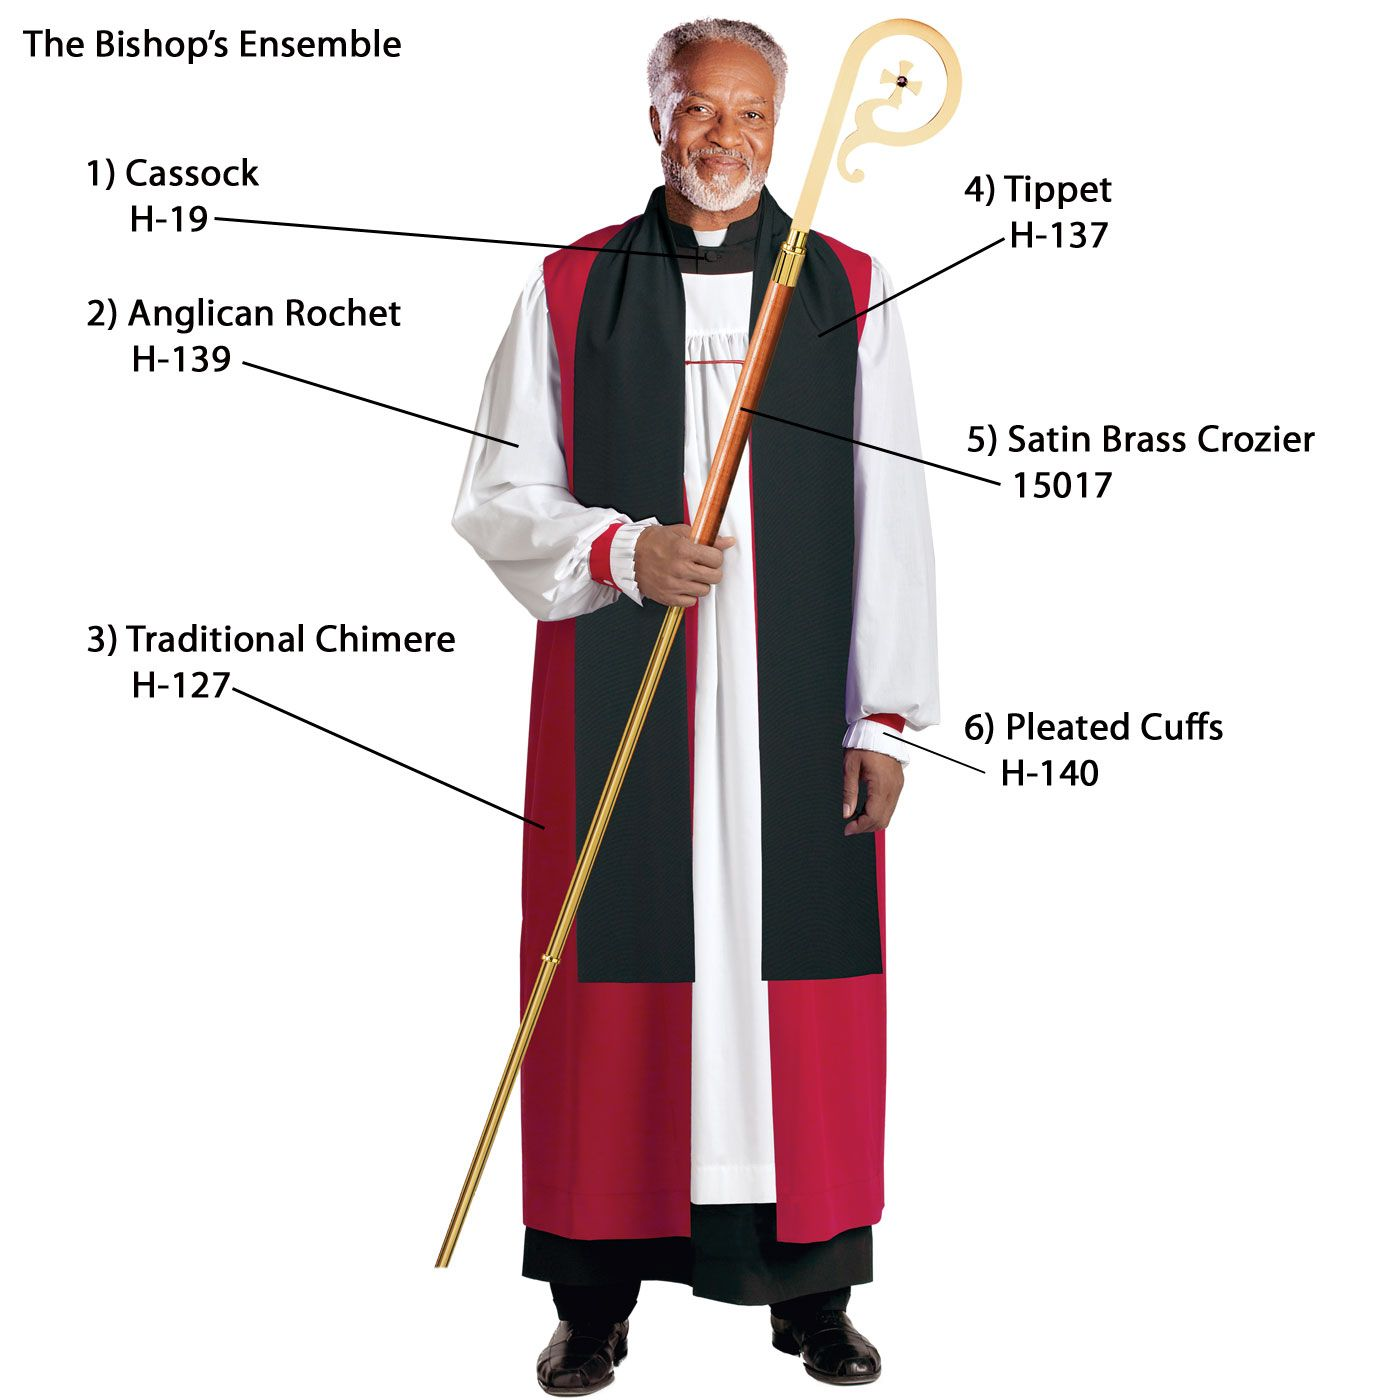 Biblical Times Priest Collar Black Dickey White Adult Costume Accessory Clergy